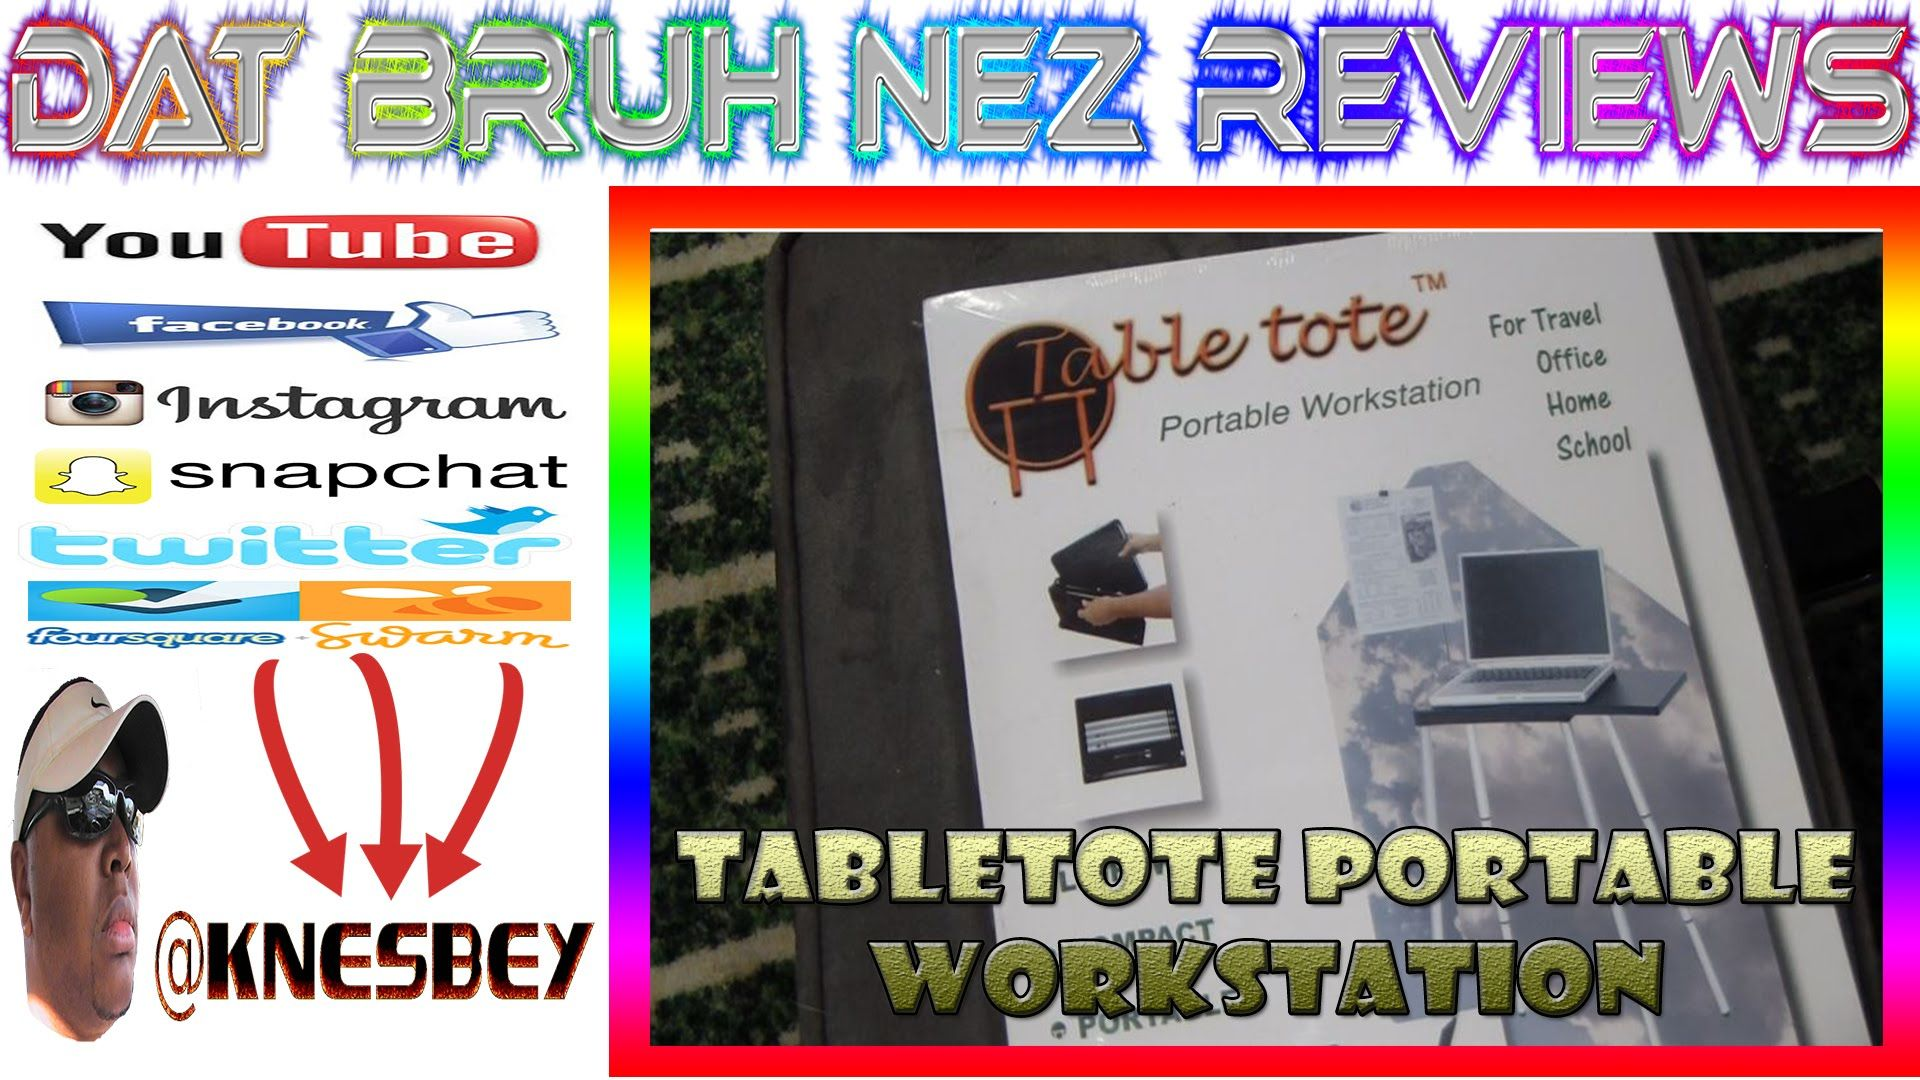 TABLE TOTE PORTABLE WORKSTATION